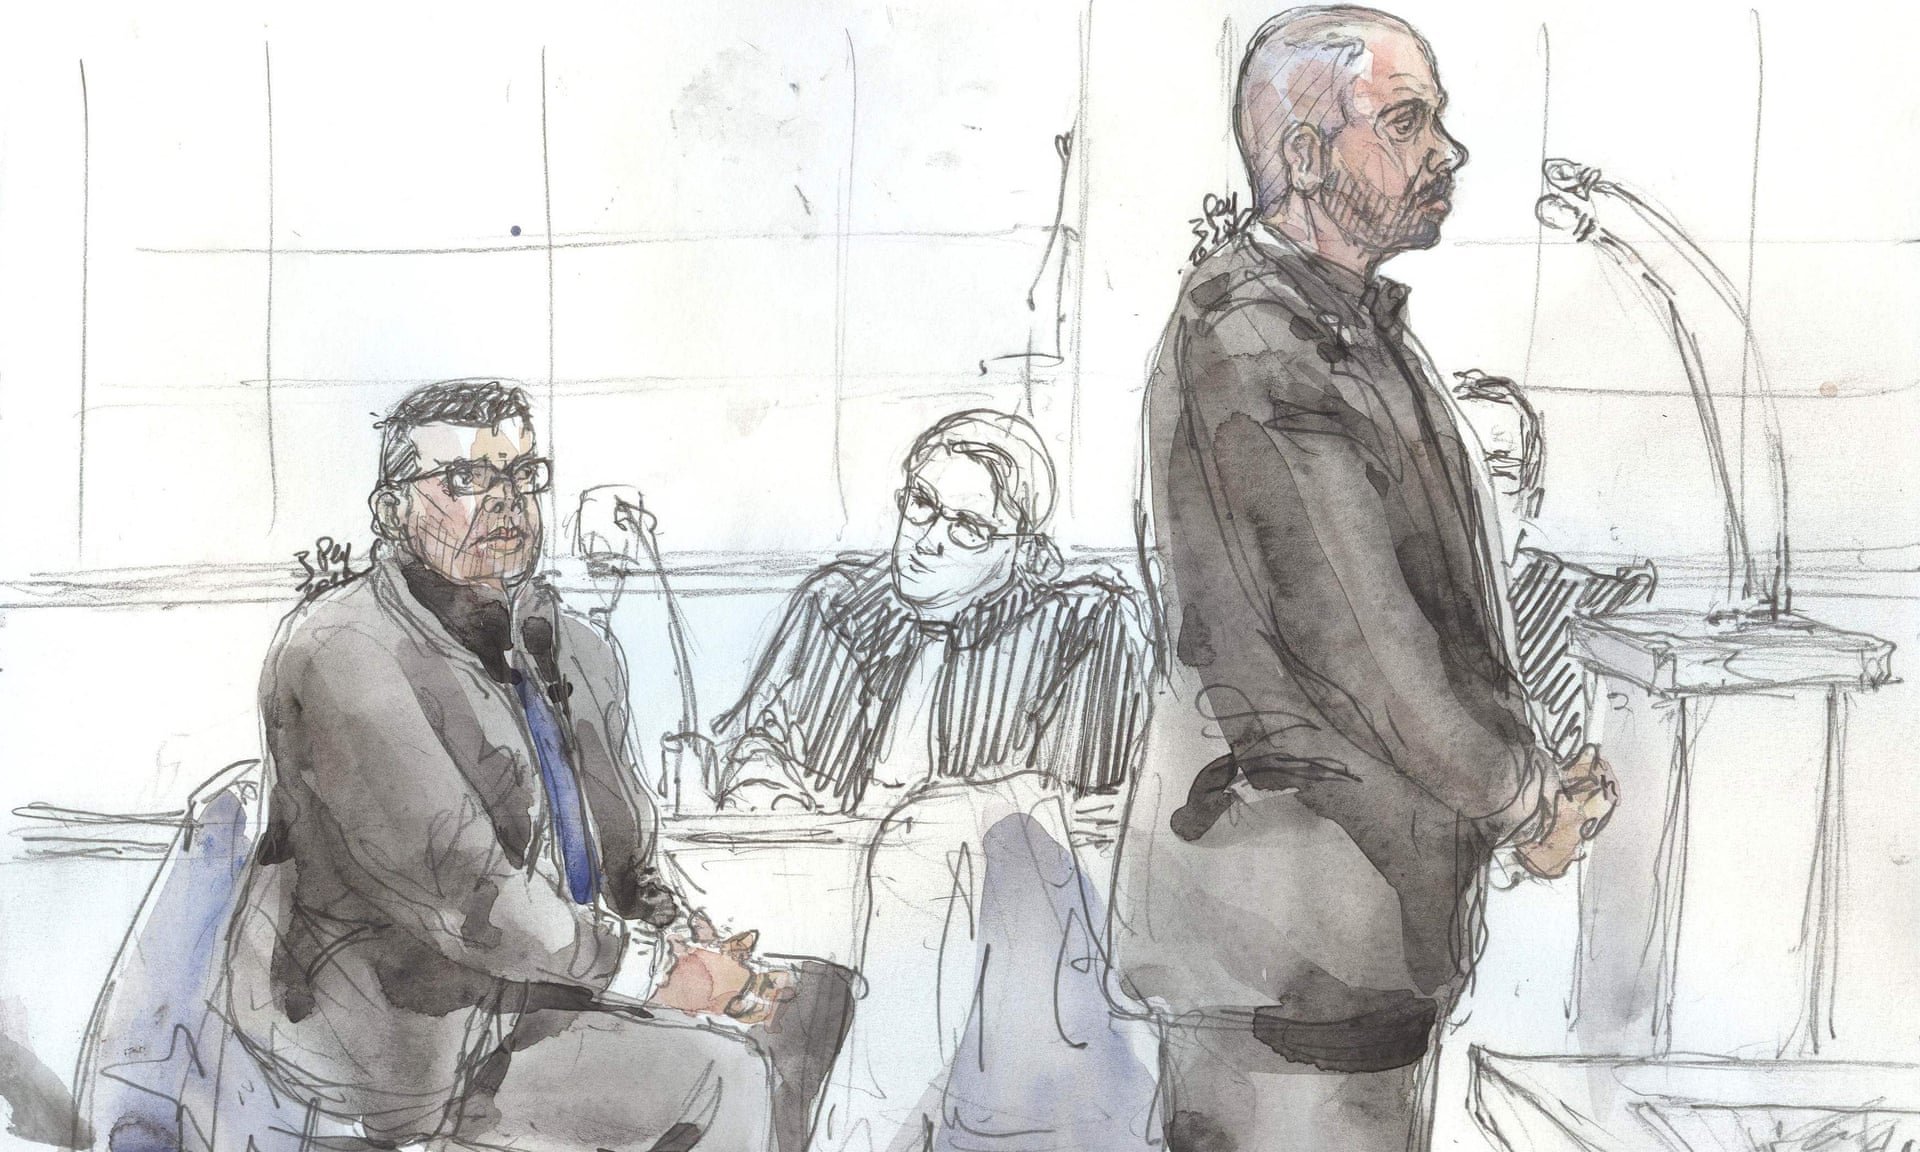 Court sketch of Antoine Q and Nicolas R, the police officers accused of raping a Canadian tourist. hoto: Benoît Peyrucq/AFP/Getty Images